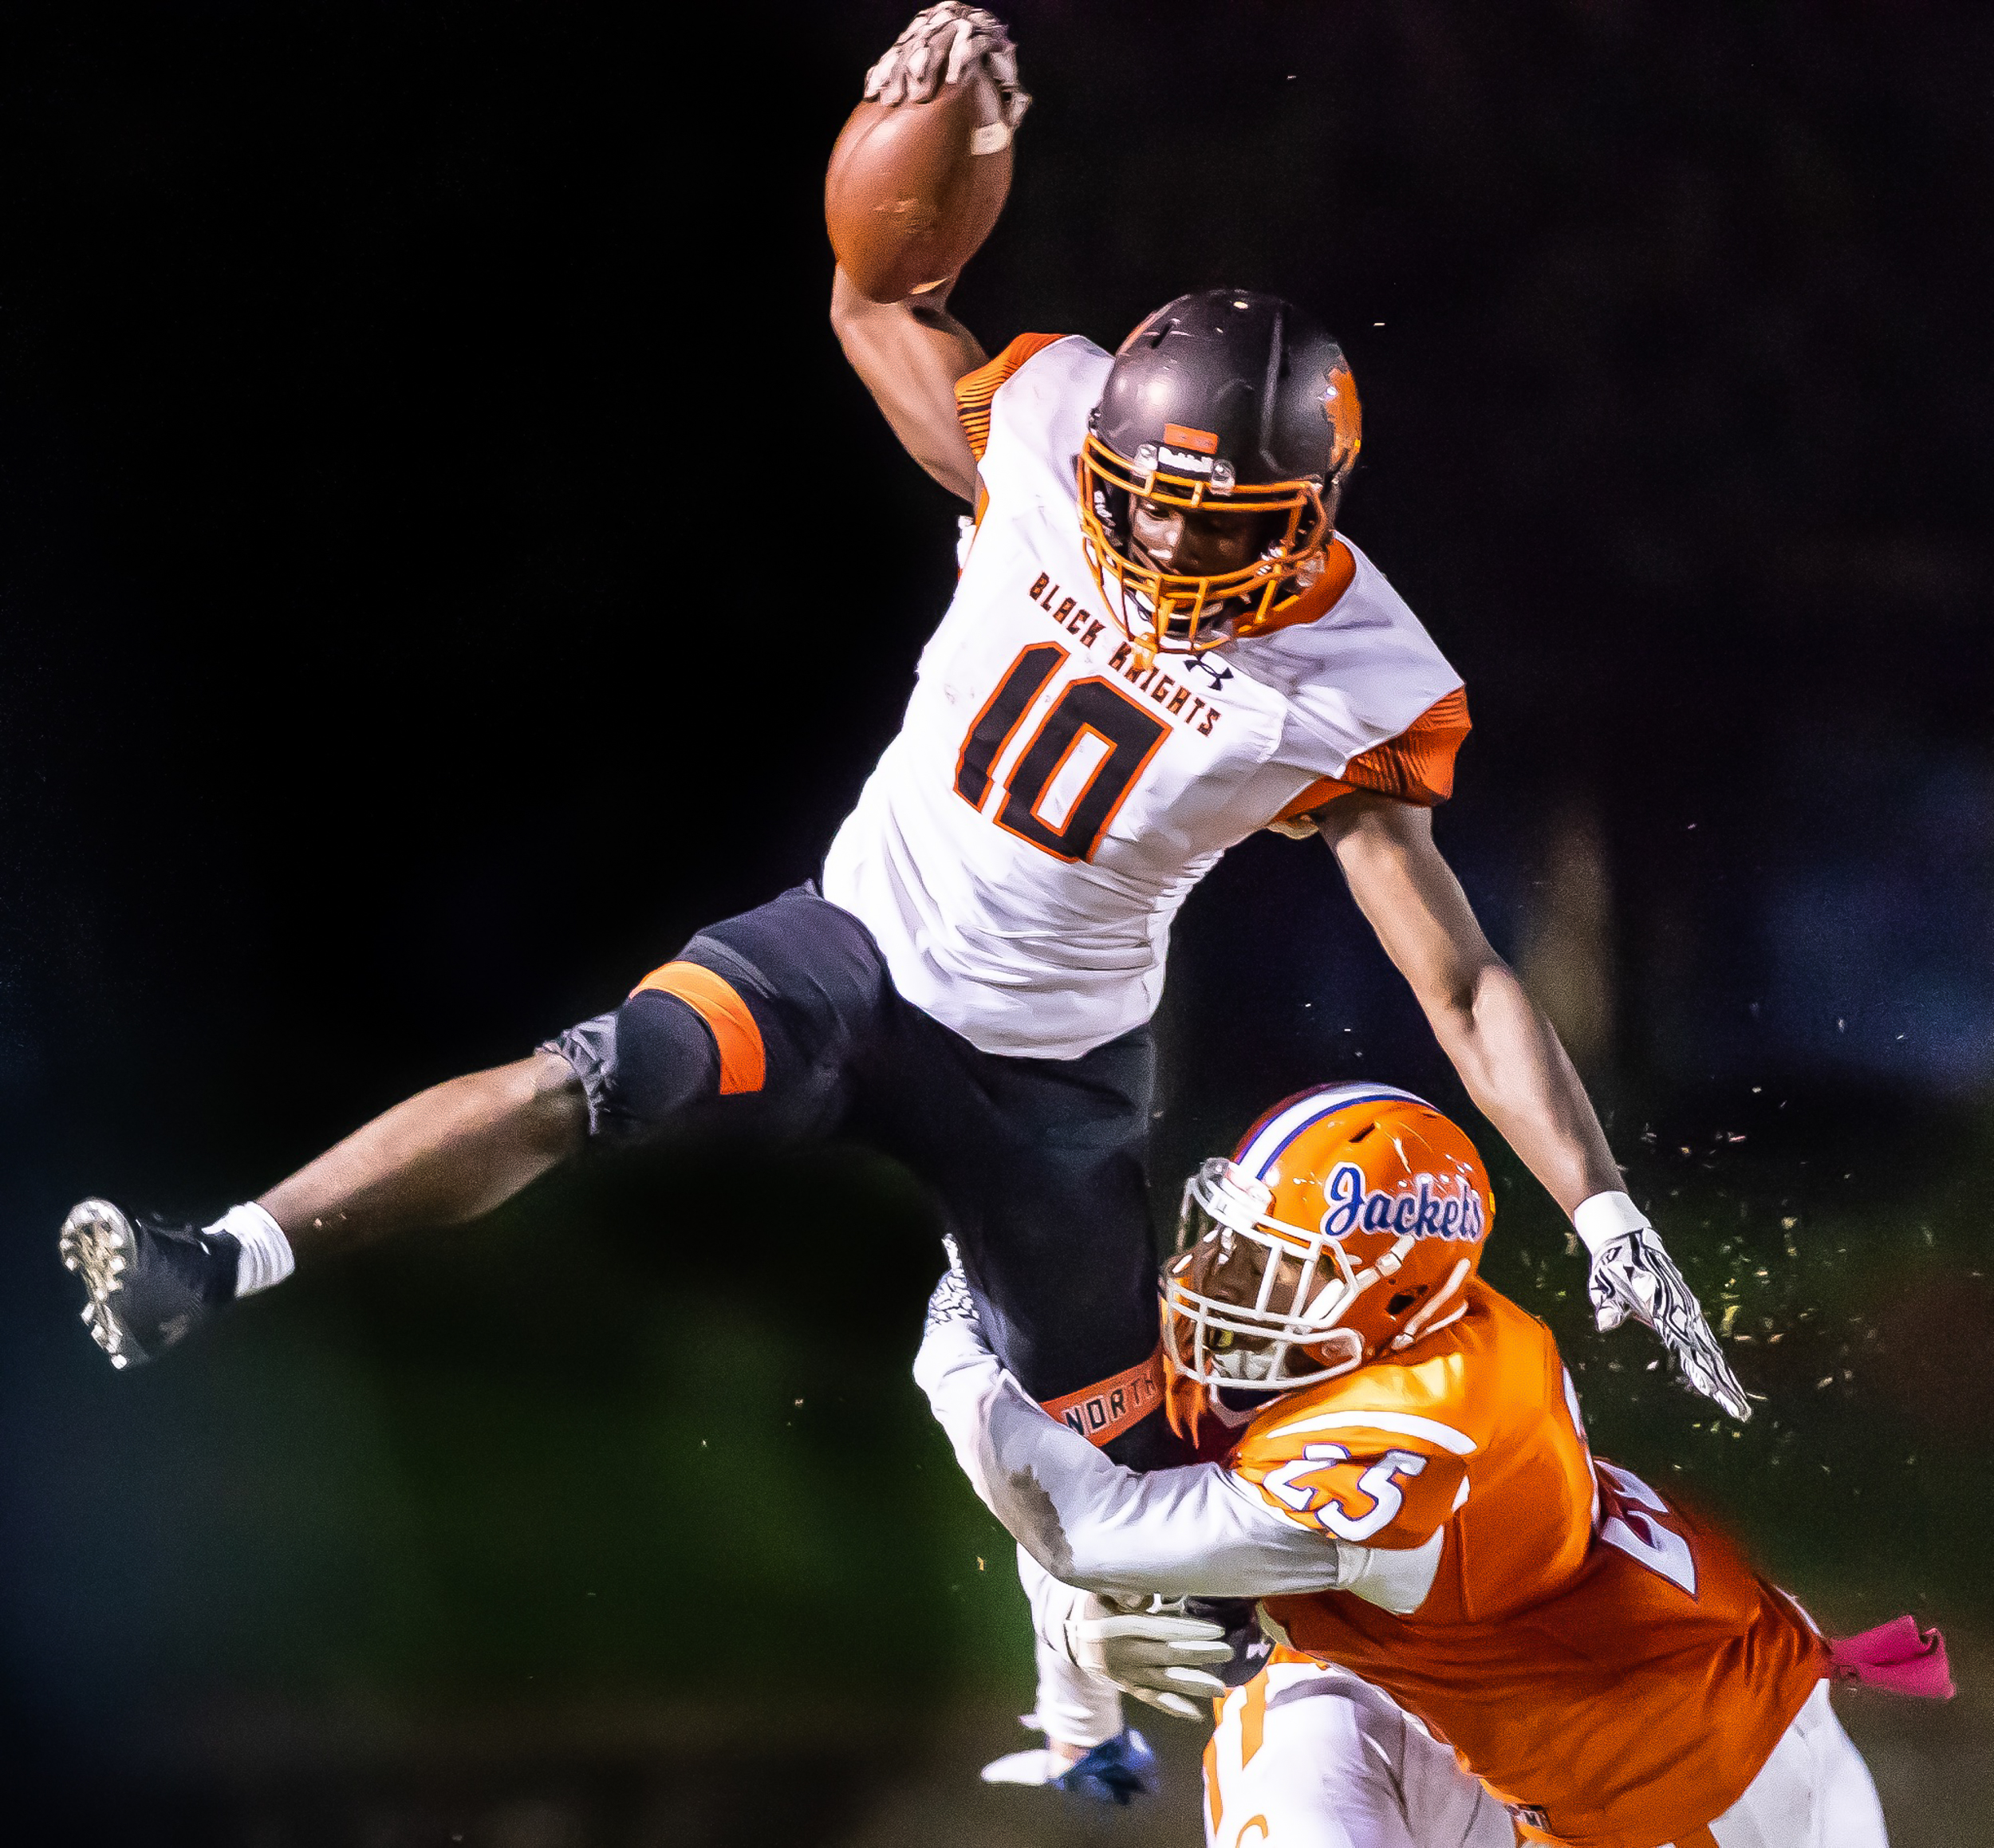 North Davidson's Kobe Brown jumps to avoid contact while being tackled by Lexington's Abraham Vargas Perez during the first half of their game on October 12, 2018 at North Davidson High in Lexington, North Carolina.